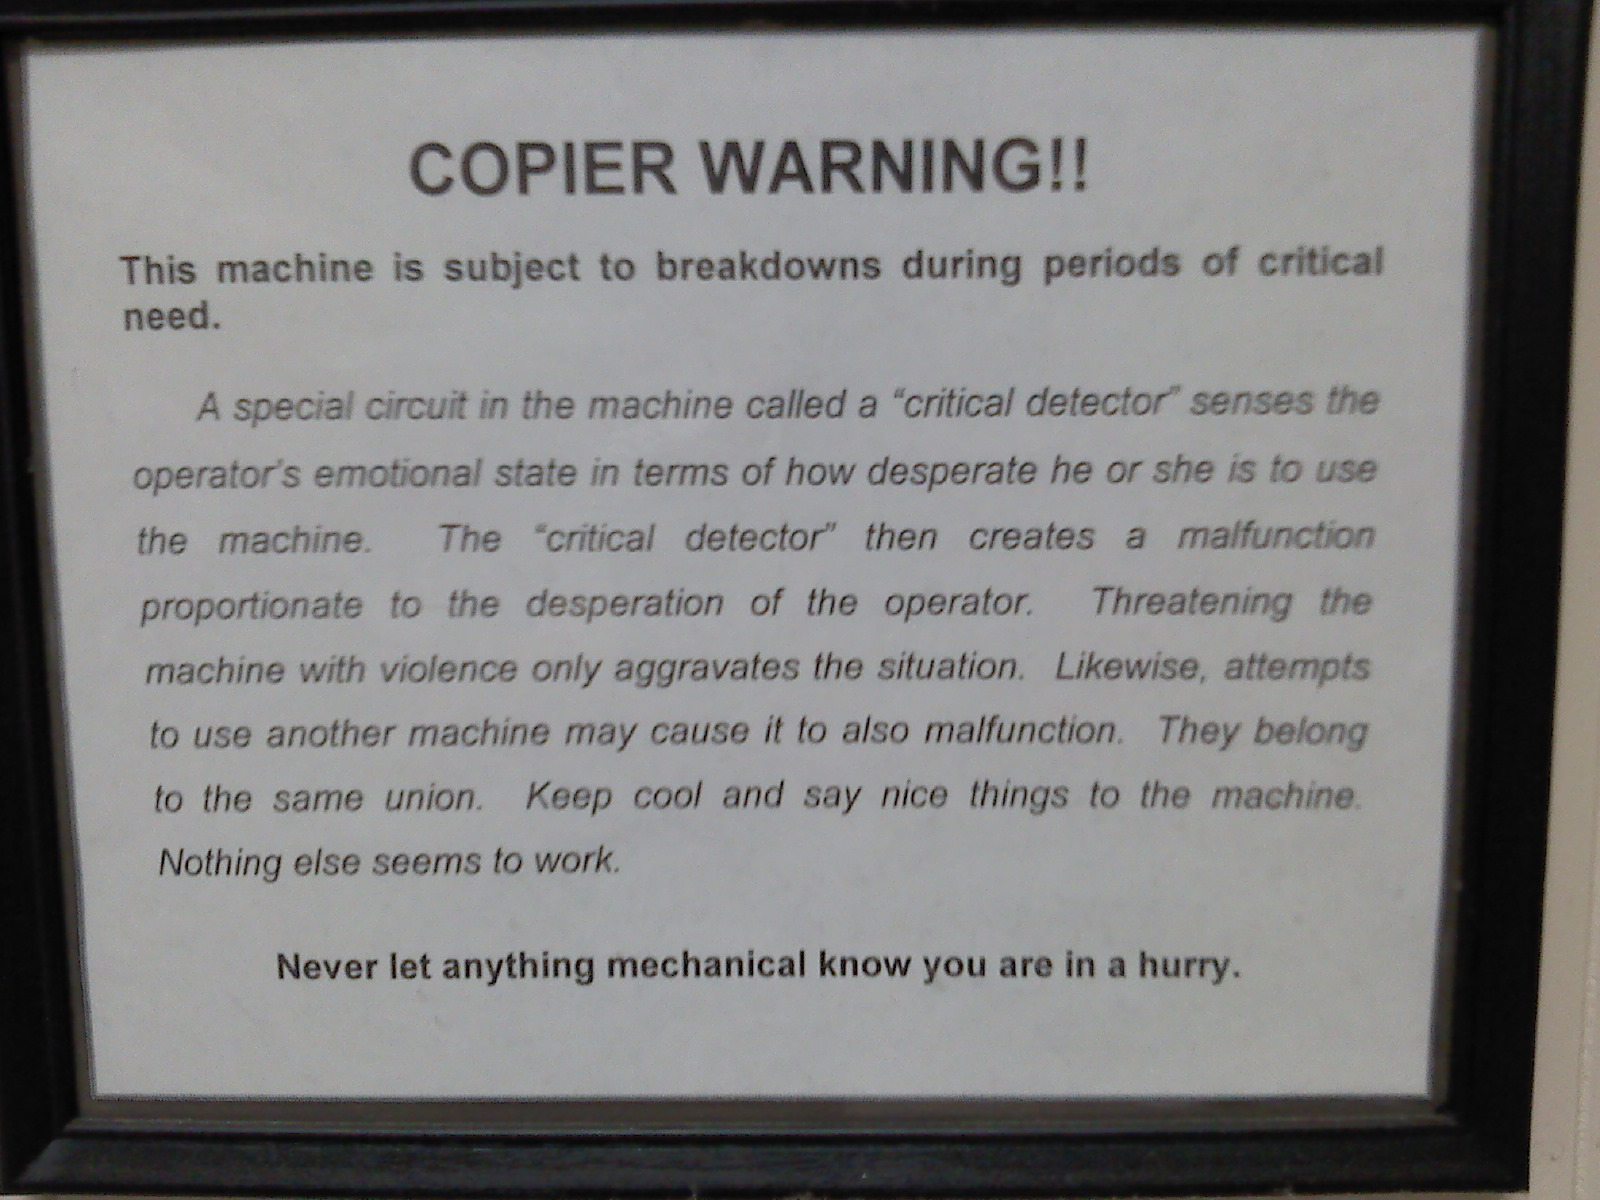 Warning on office copier confirms all your paranoid delusions.